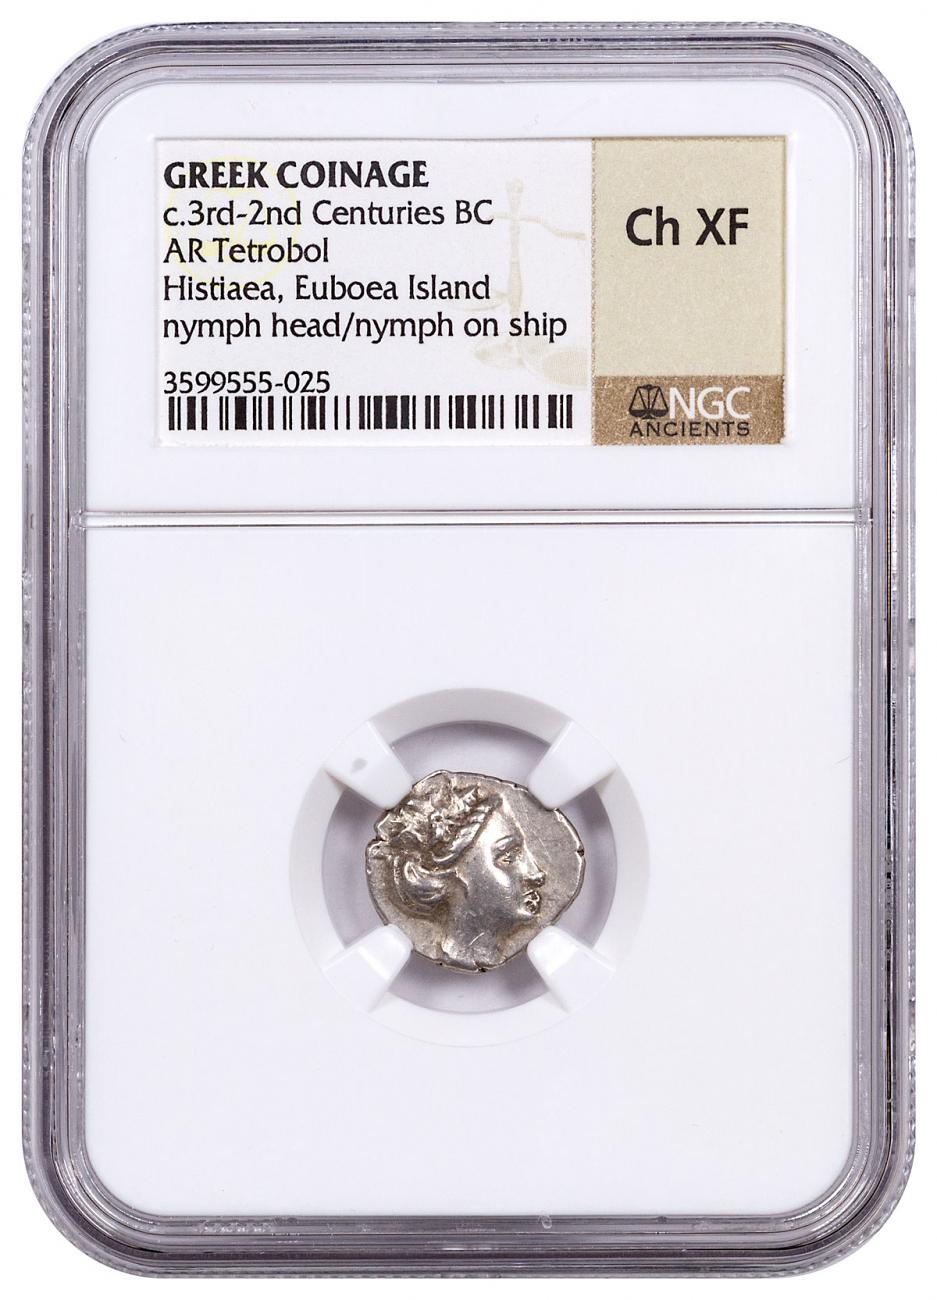 Greek Island of Euboea, Histiaea Silver Tetrobol (c.3rd-2nd Centuries BC) - obv. Nymph/rv. Nymph on Stern of Ship NGC Ch. XF